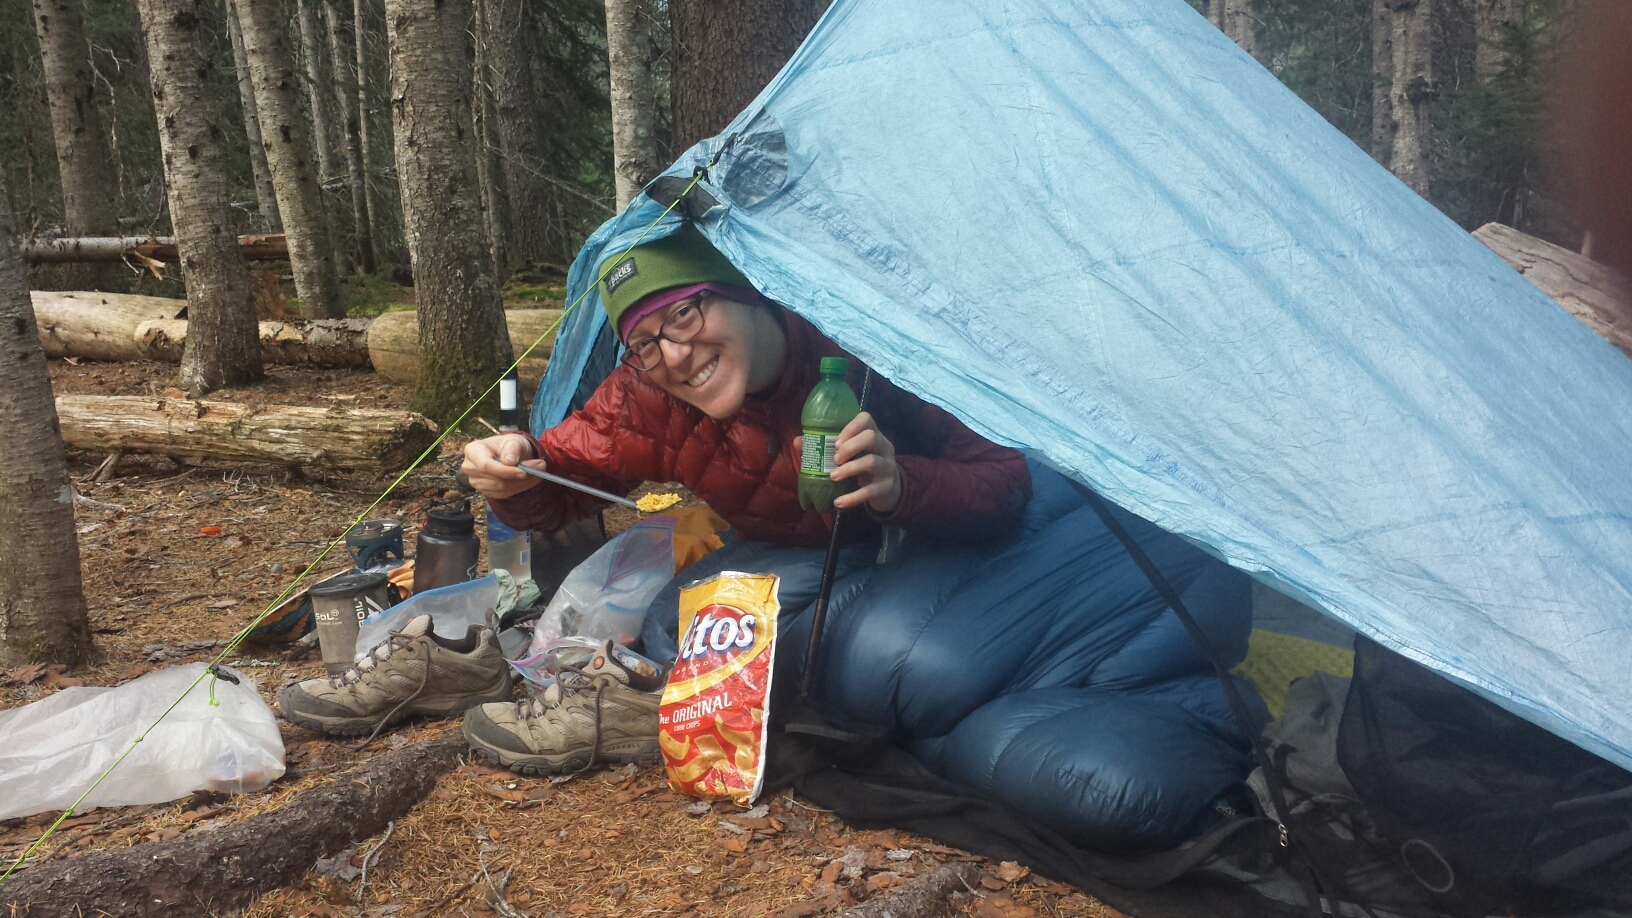 Last breakfast on trail: Fritos & coffee